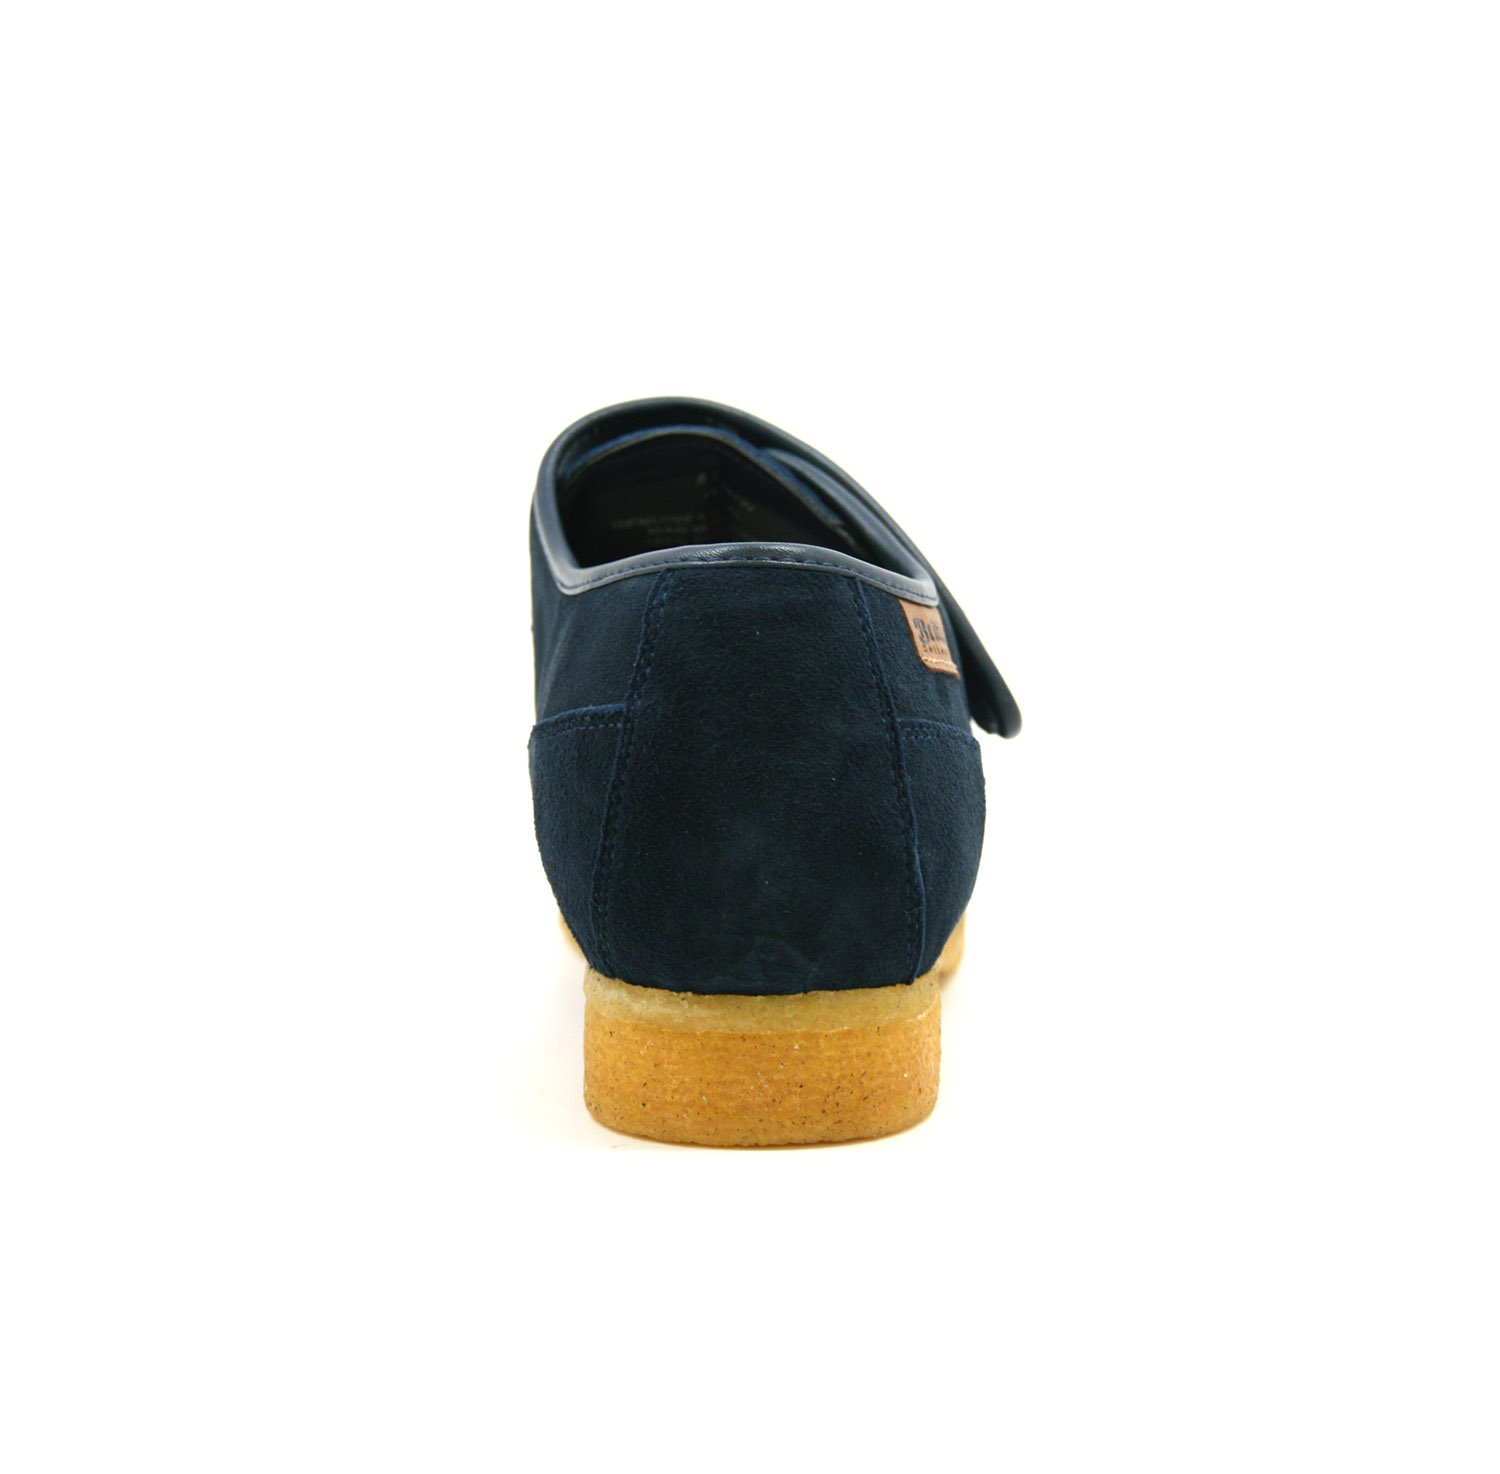 British Collection Royal Old School Slip On Shoes 9.5M Navy Leather by British Collection (Image #3)